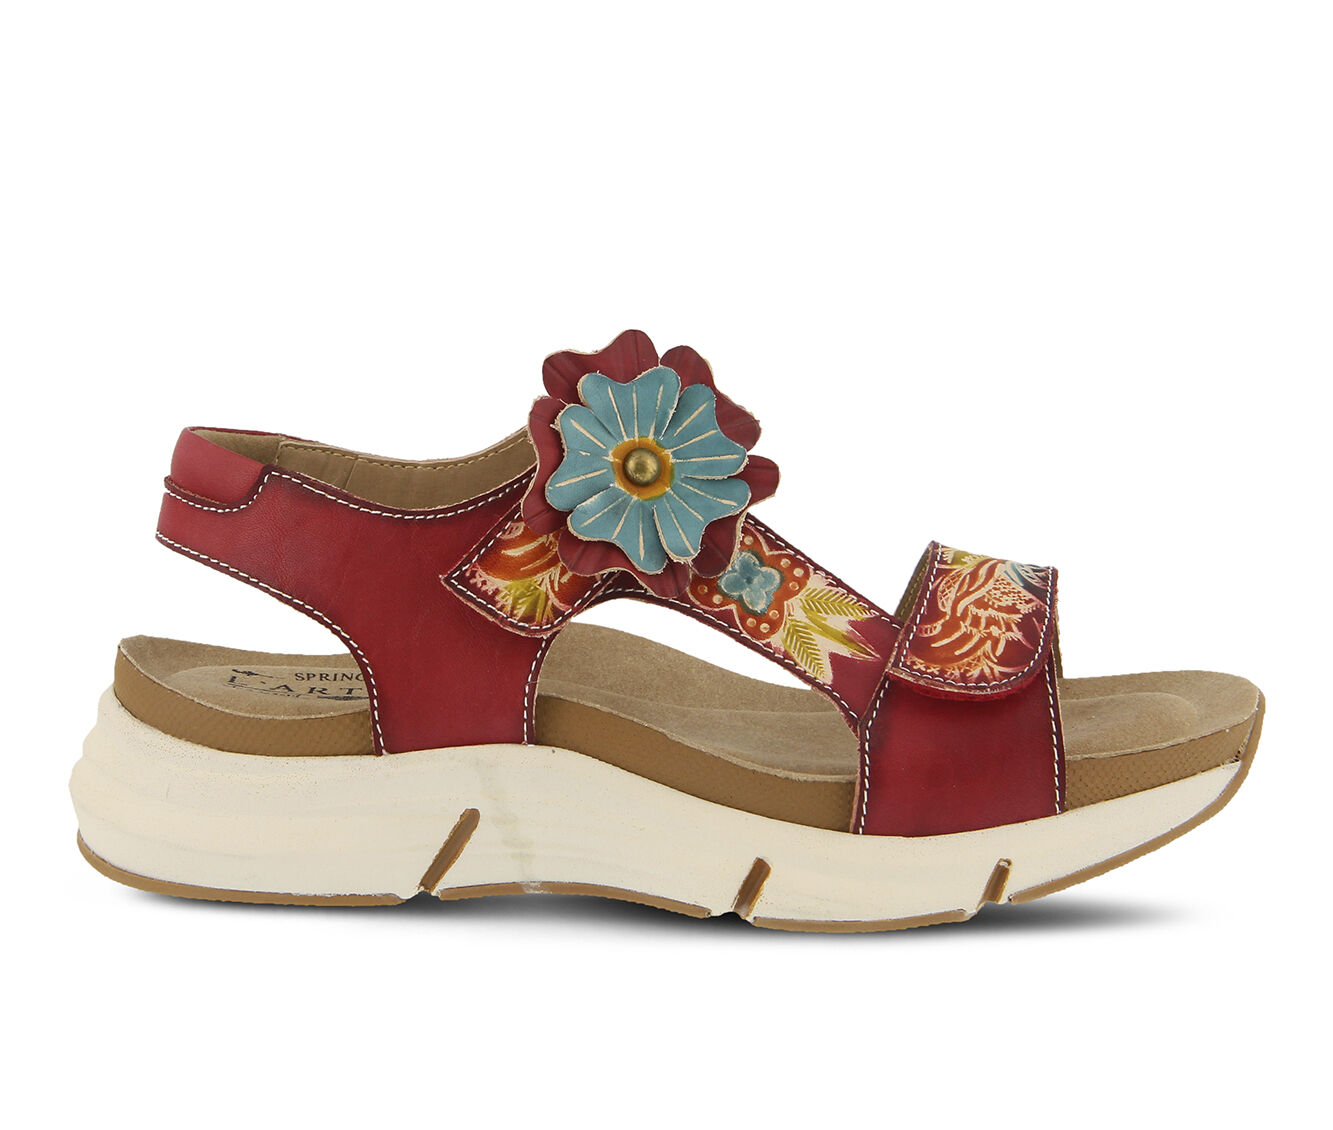 Women's L'ARTISTE Vergie Flatform Sandals Red